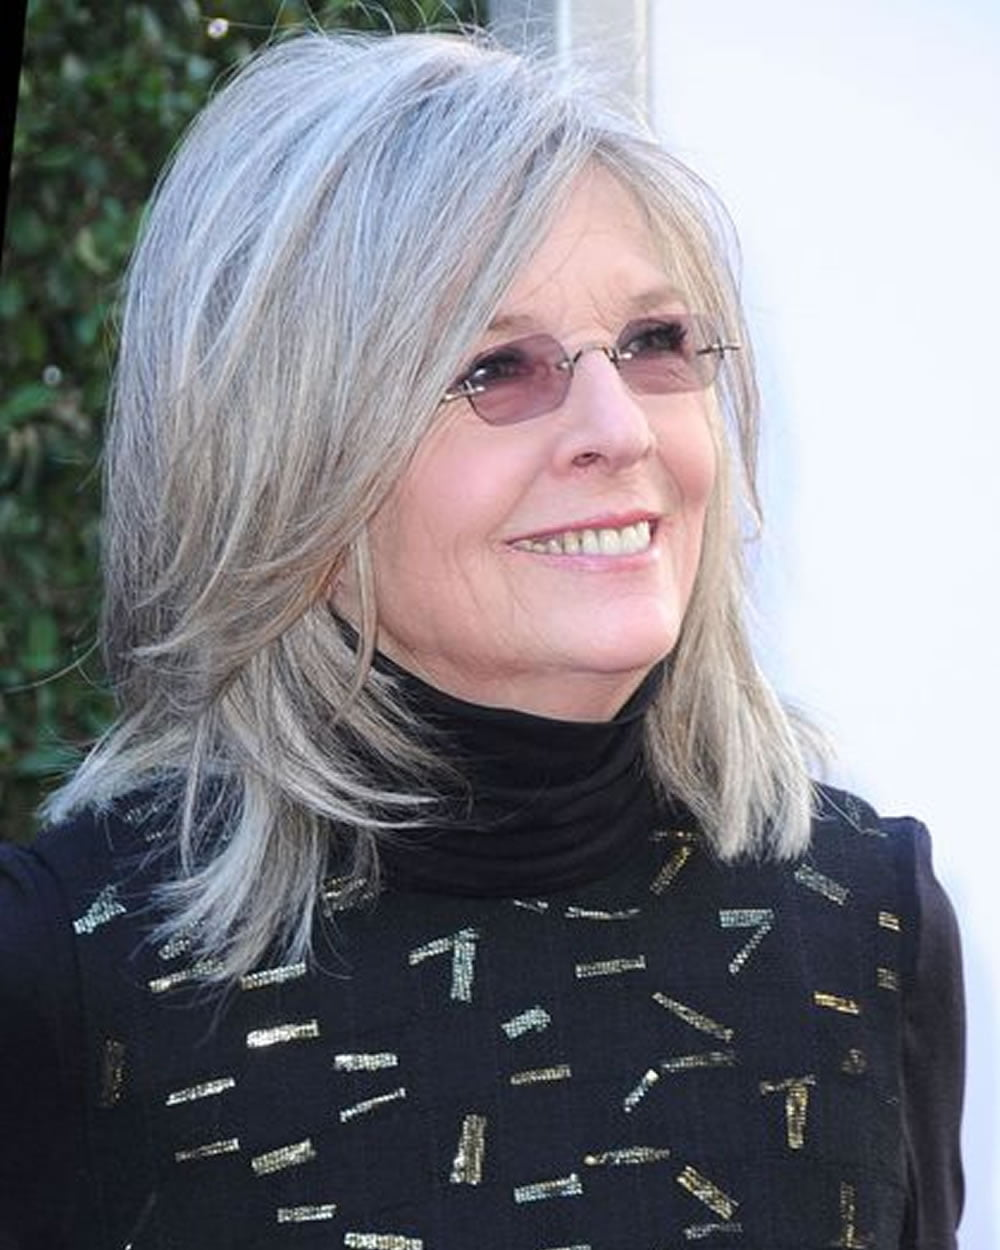 Hairstyles for Older Women Over 50 to 60 in 2019 - Page 3 - HAIRSTYLES